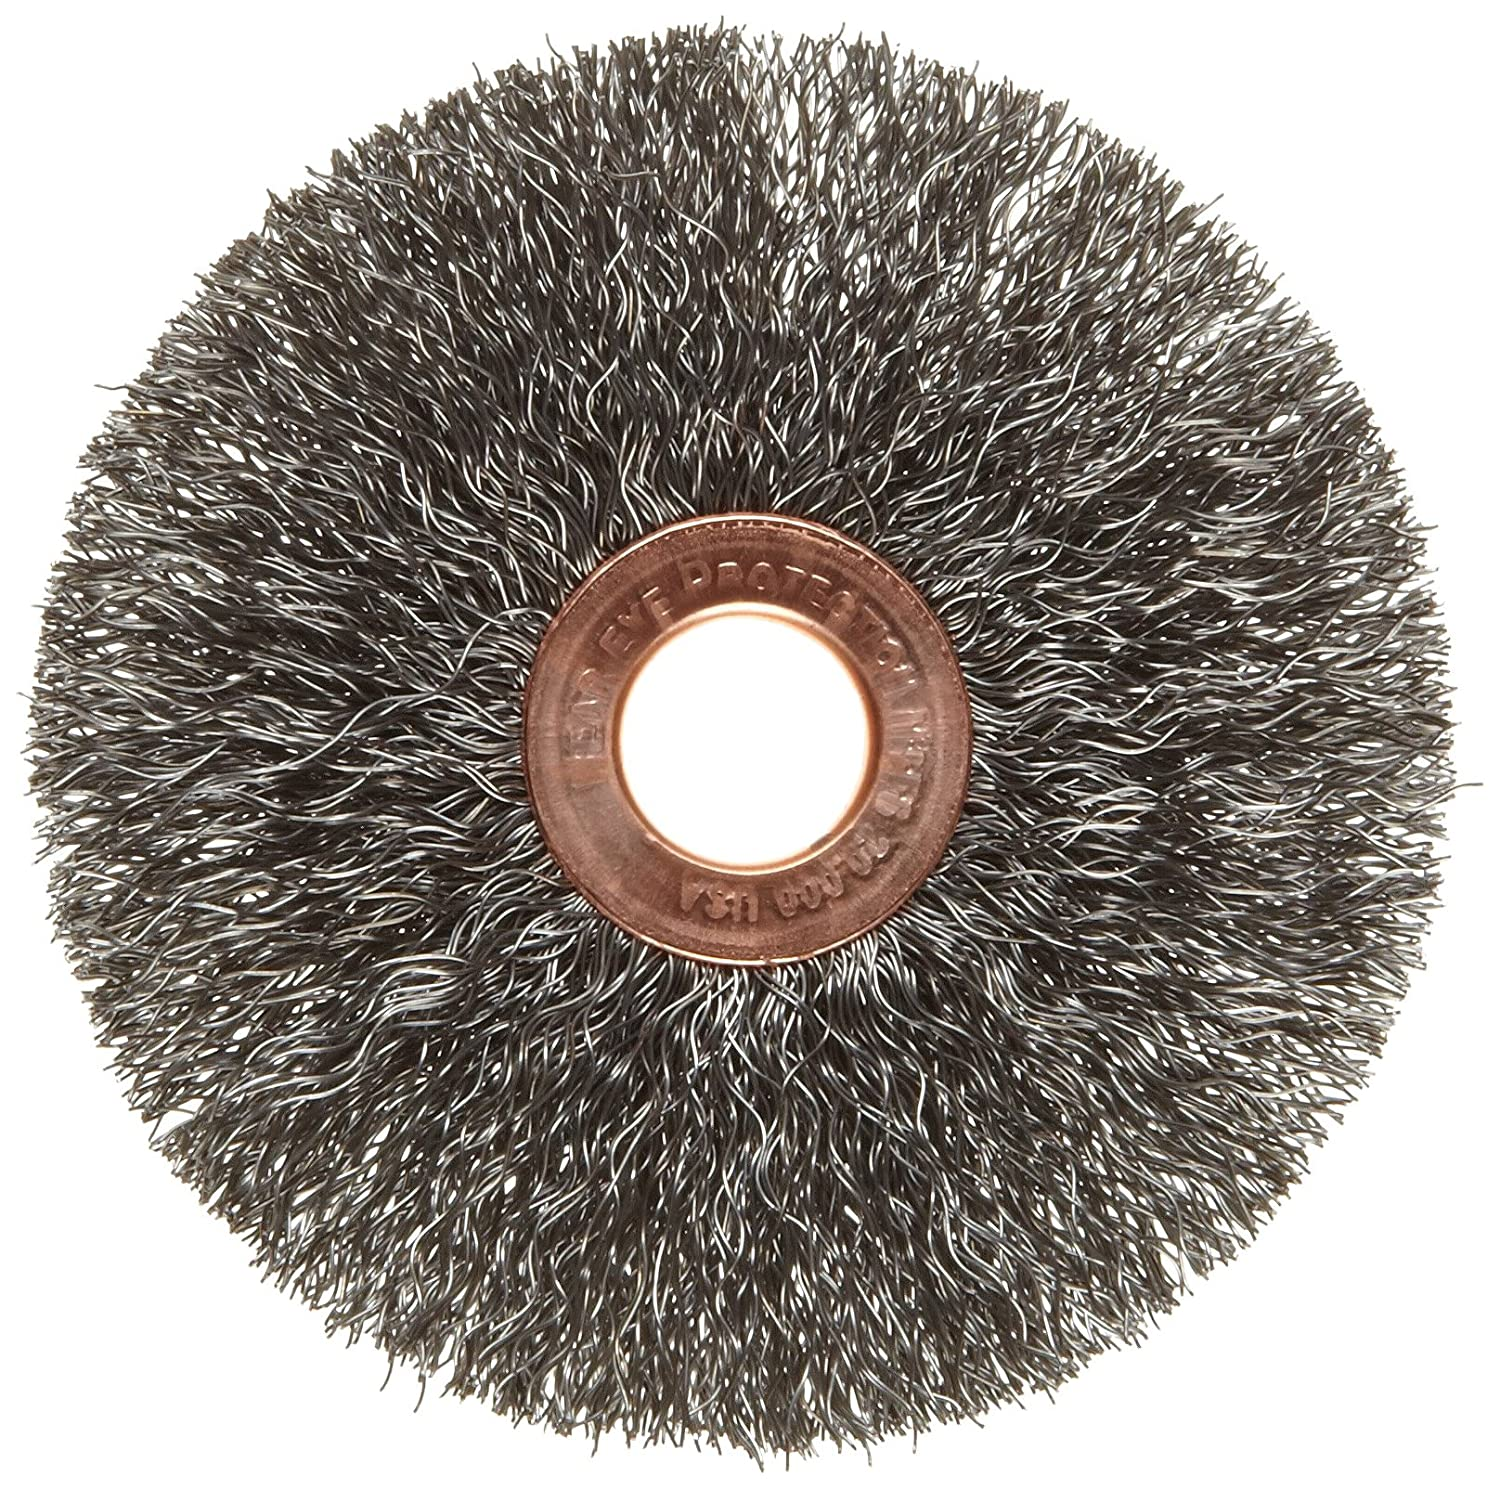 Steel Round Hole 1//2 Arbor Weiler Copper Center Wire Wheel Brush 20000 rpm 5//8 Brush Face Width 1 Bristle Length Crimped Wire 3 Diameter 0.0104 Wire Diameter